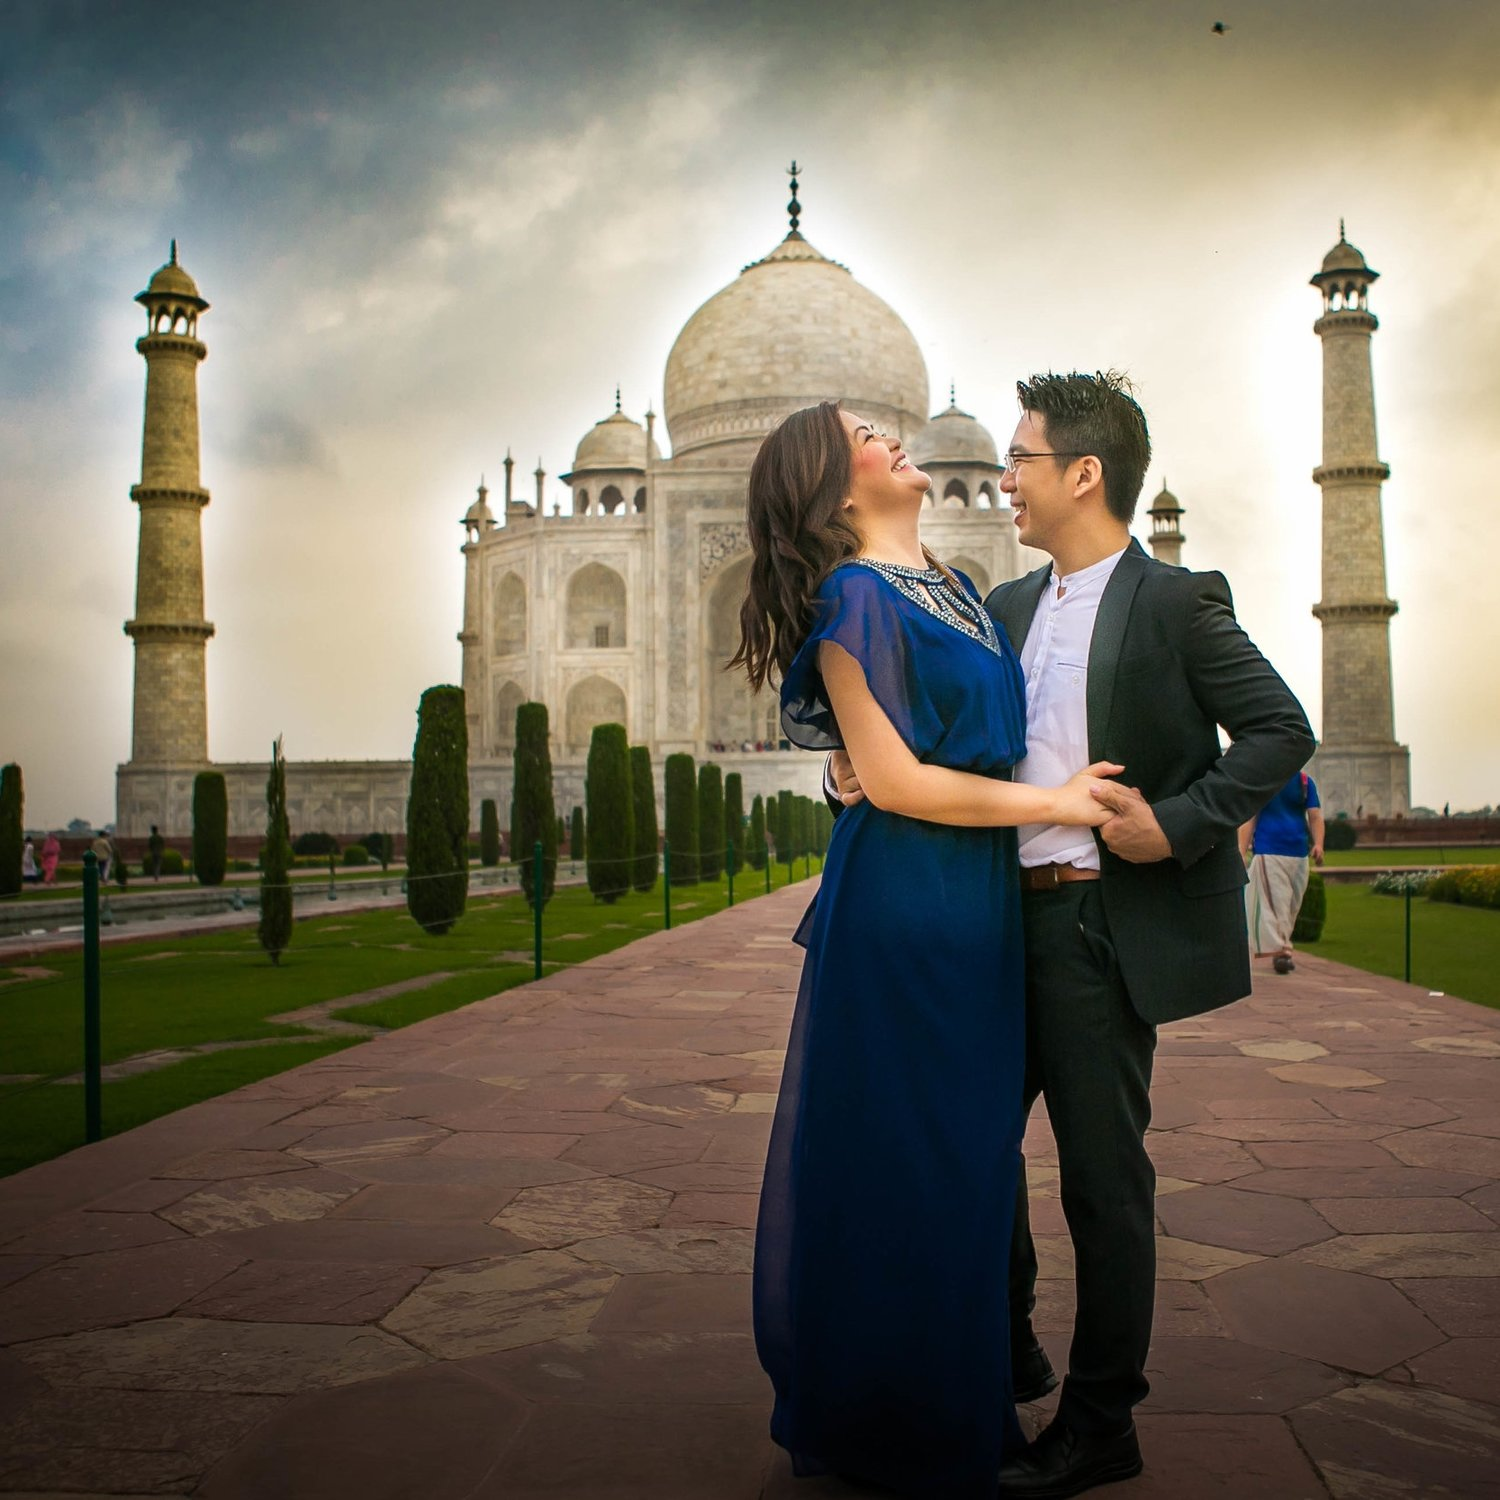 Rajesh Pande | Best Destination Wedding Photographer in Bangalore